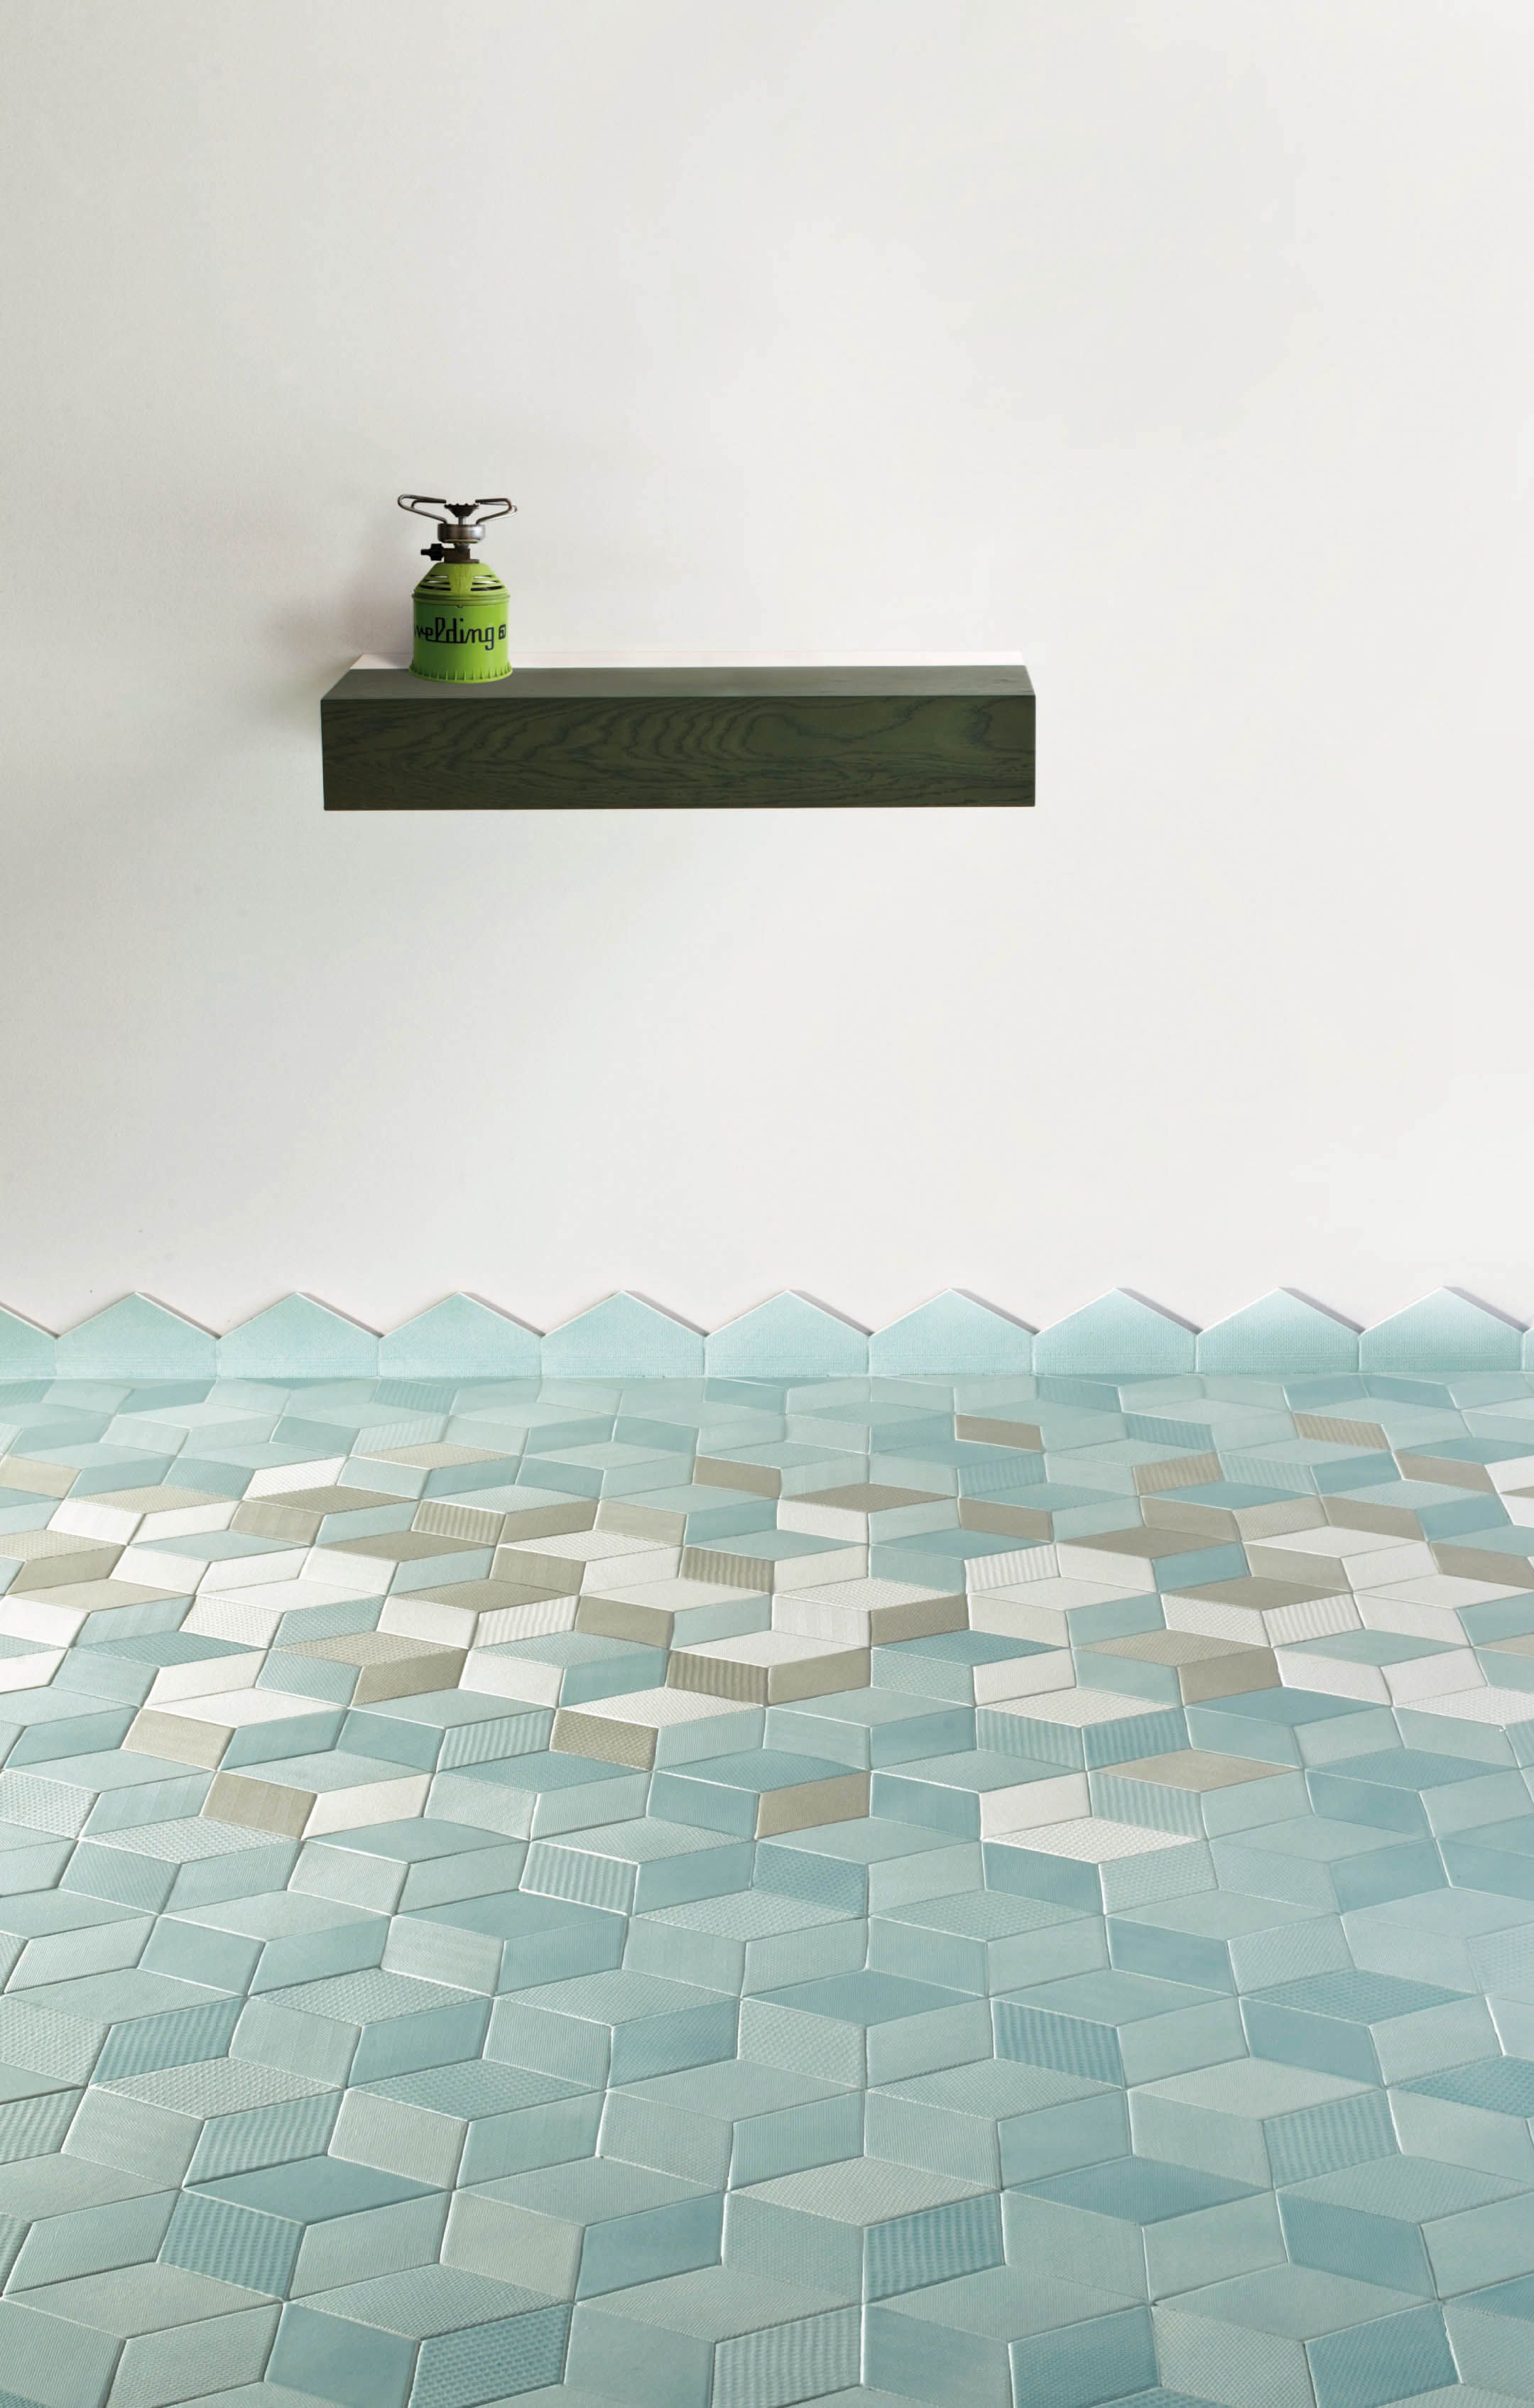 unique bathroom tile patterns. Cool #tiles For A Bathroom Or Spa. Unique Tile Patterns